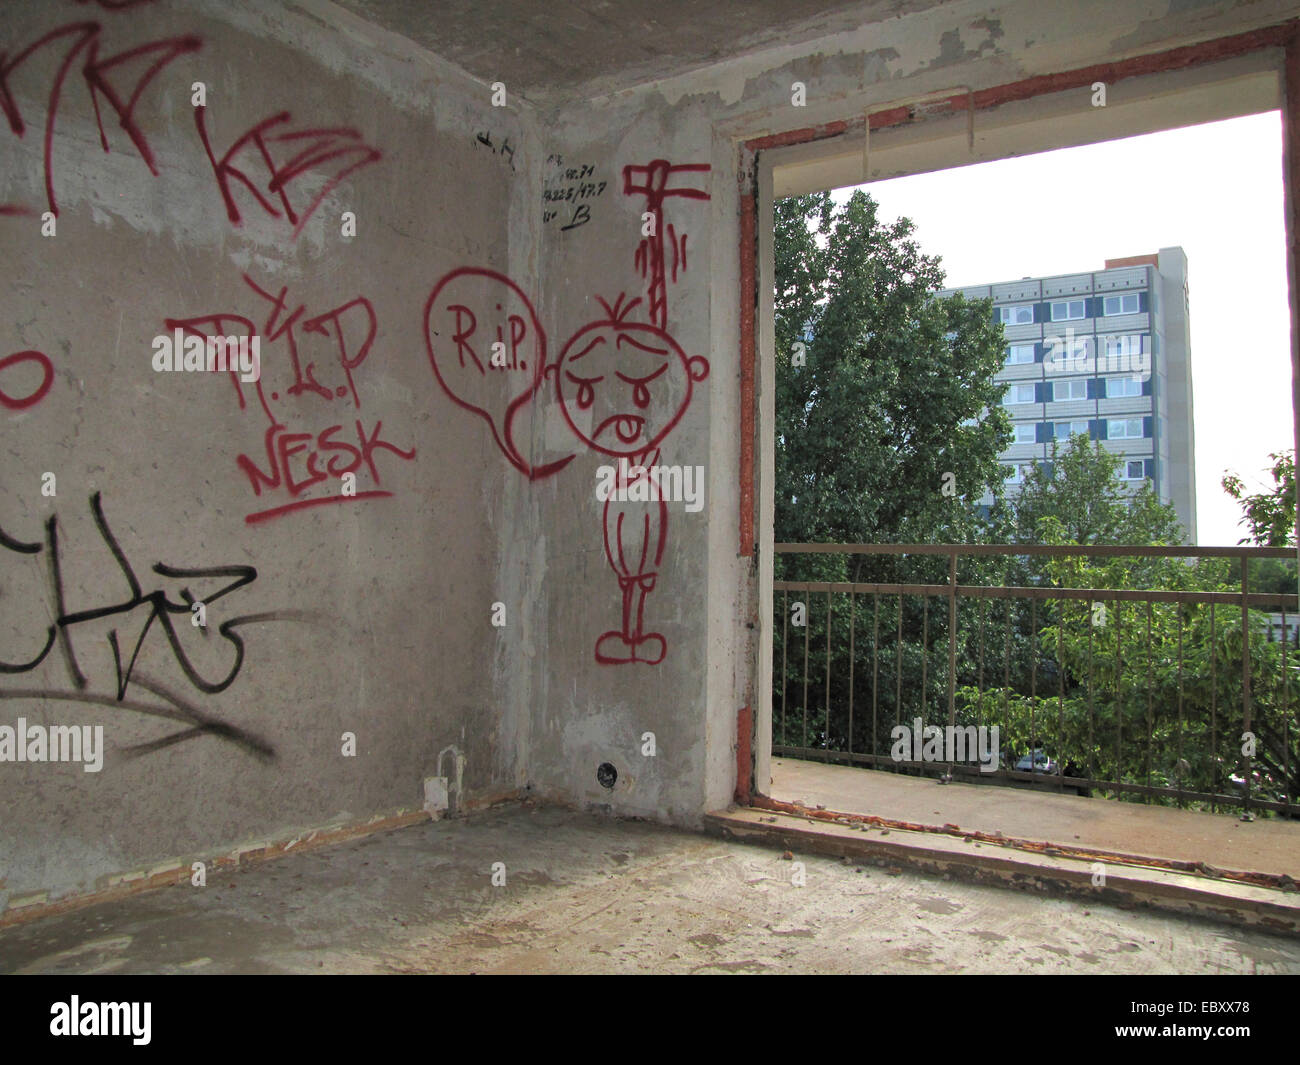 abandonned appartment with graffitis on the wall in a run down housing estate, Germany, Saxony-Anhalt, Magdeburg - Stock Image